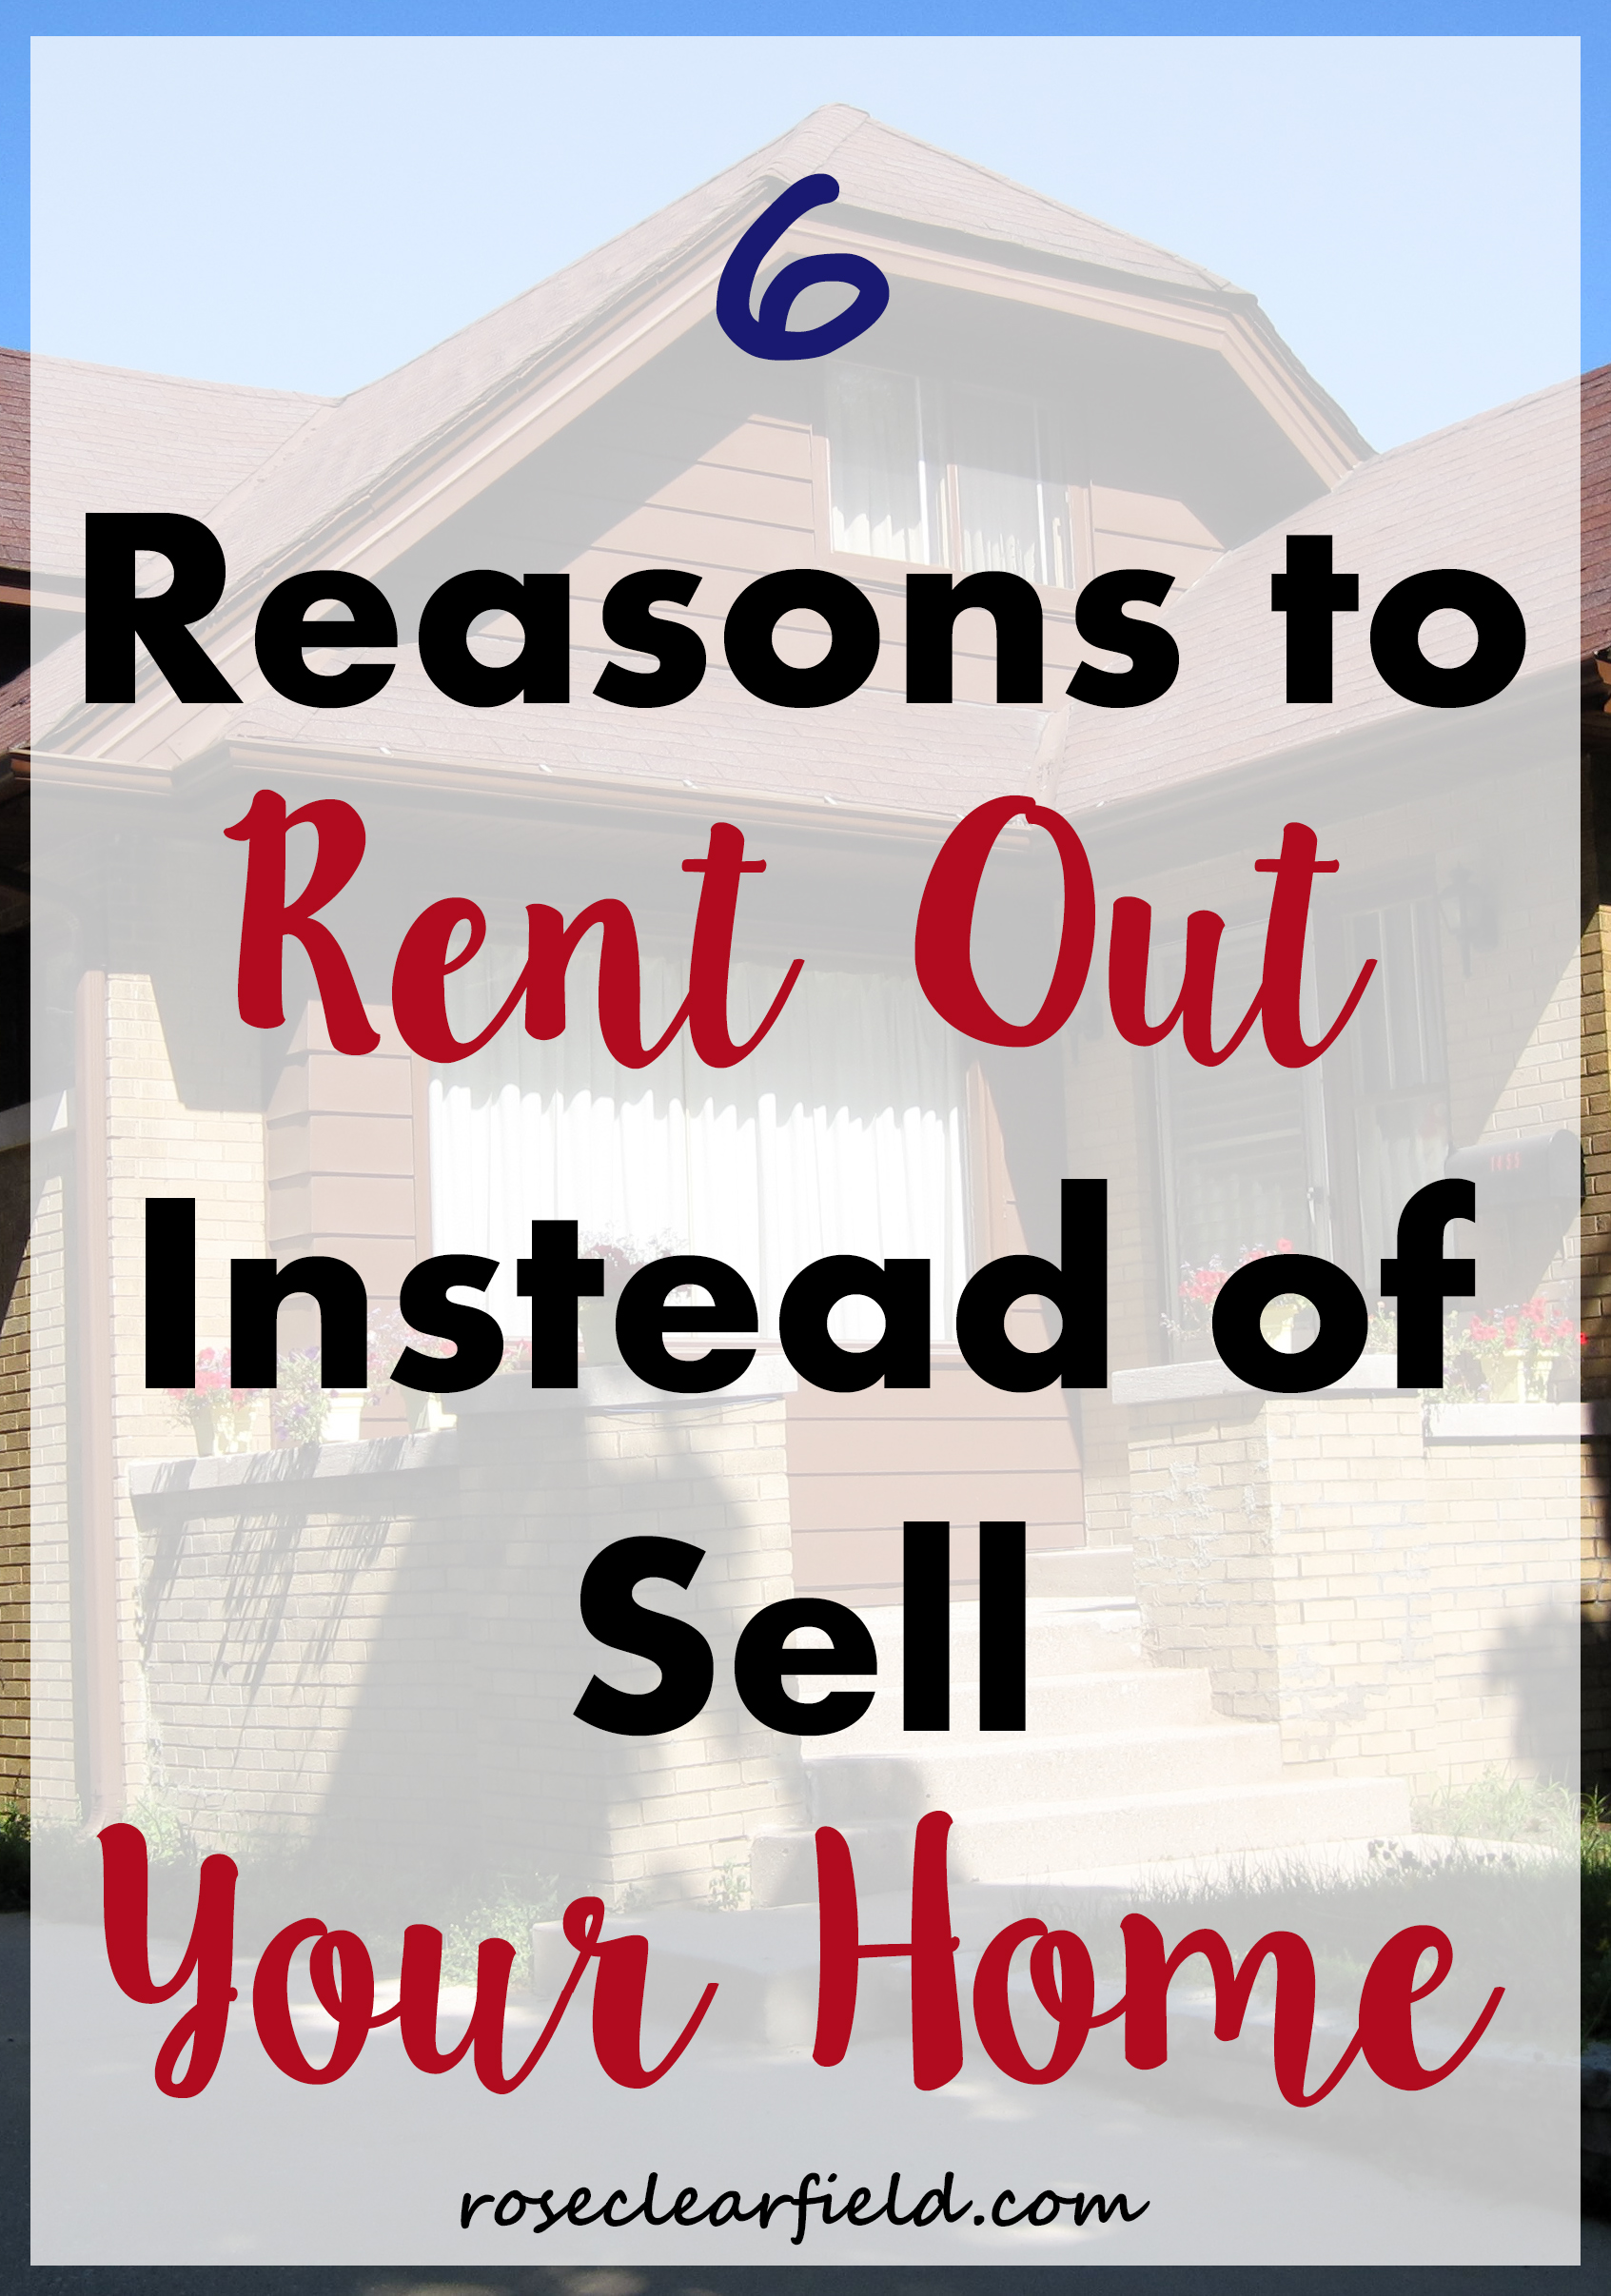 6 Reasons to Rent Out Instead of Sell Your Home   https://www.roseclearfield.com